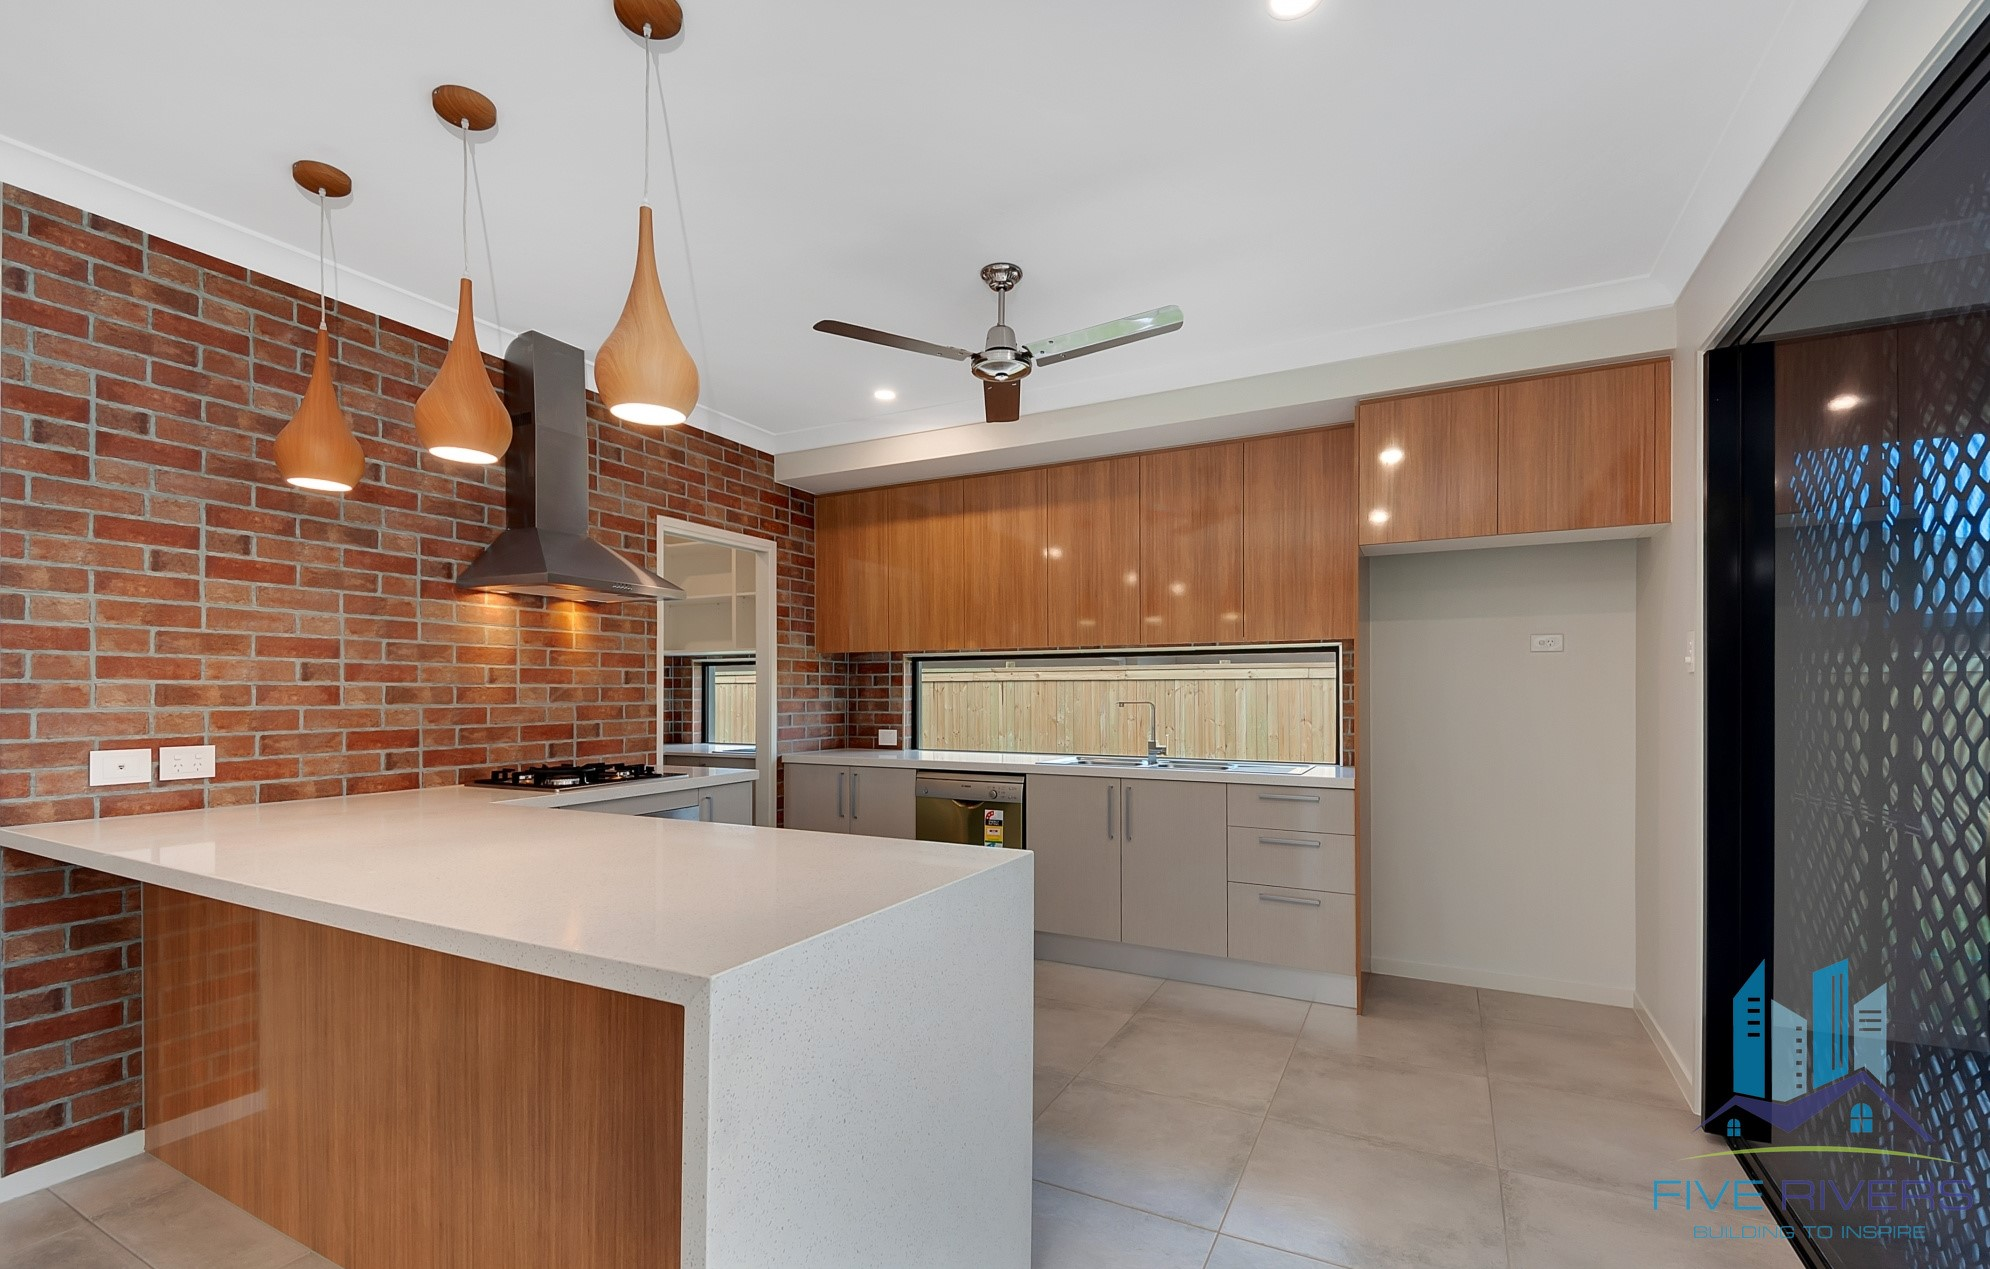 Cairns Constructions Company